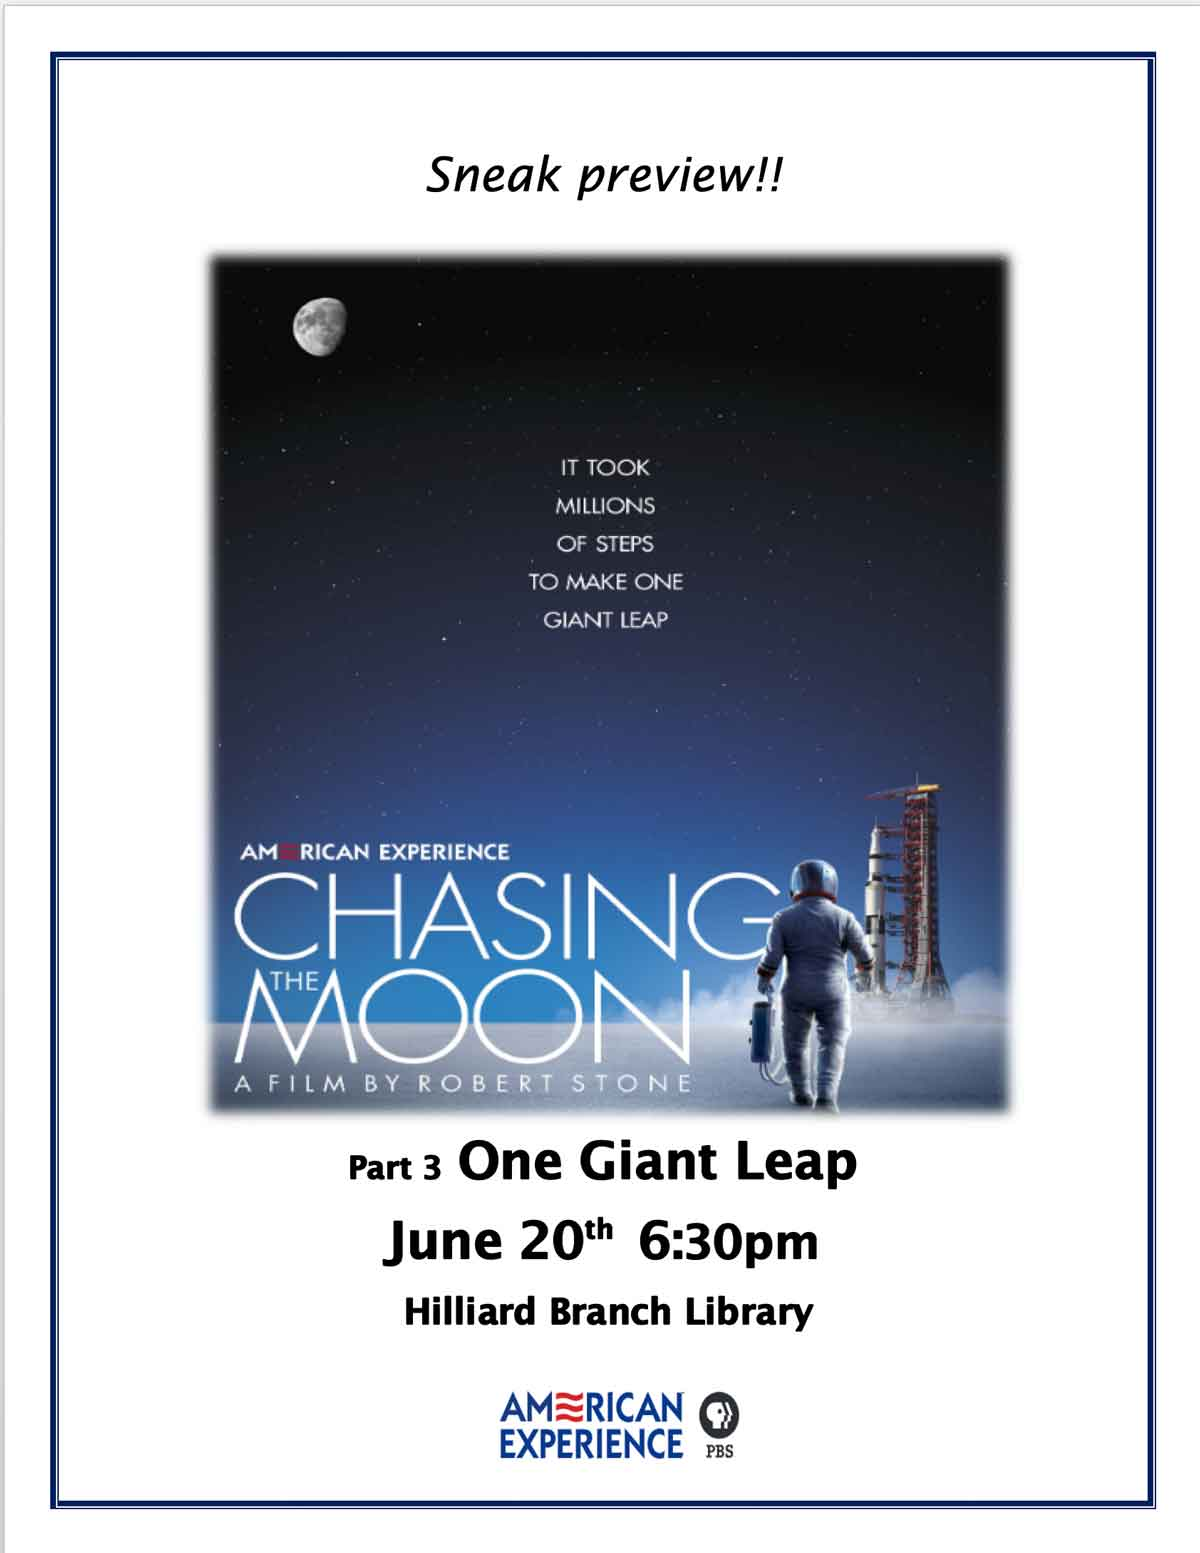 One Giant Leap June 20th 6:30pm Hilliard Branch Library